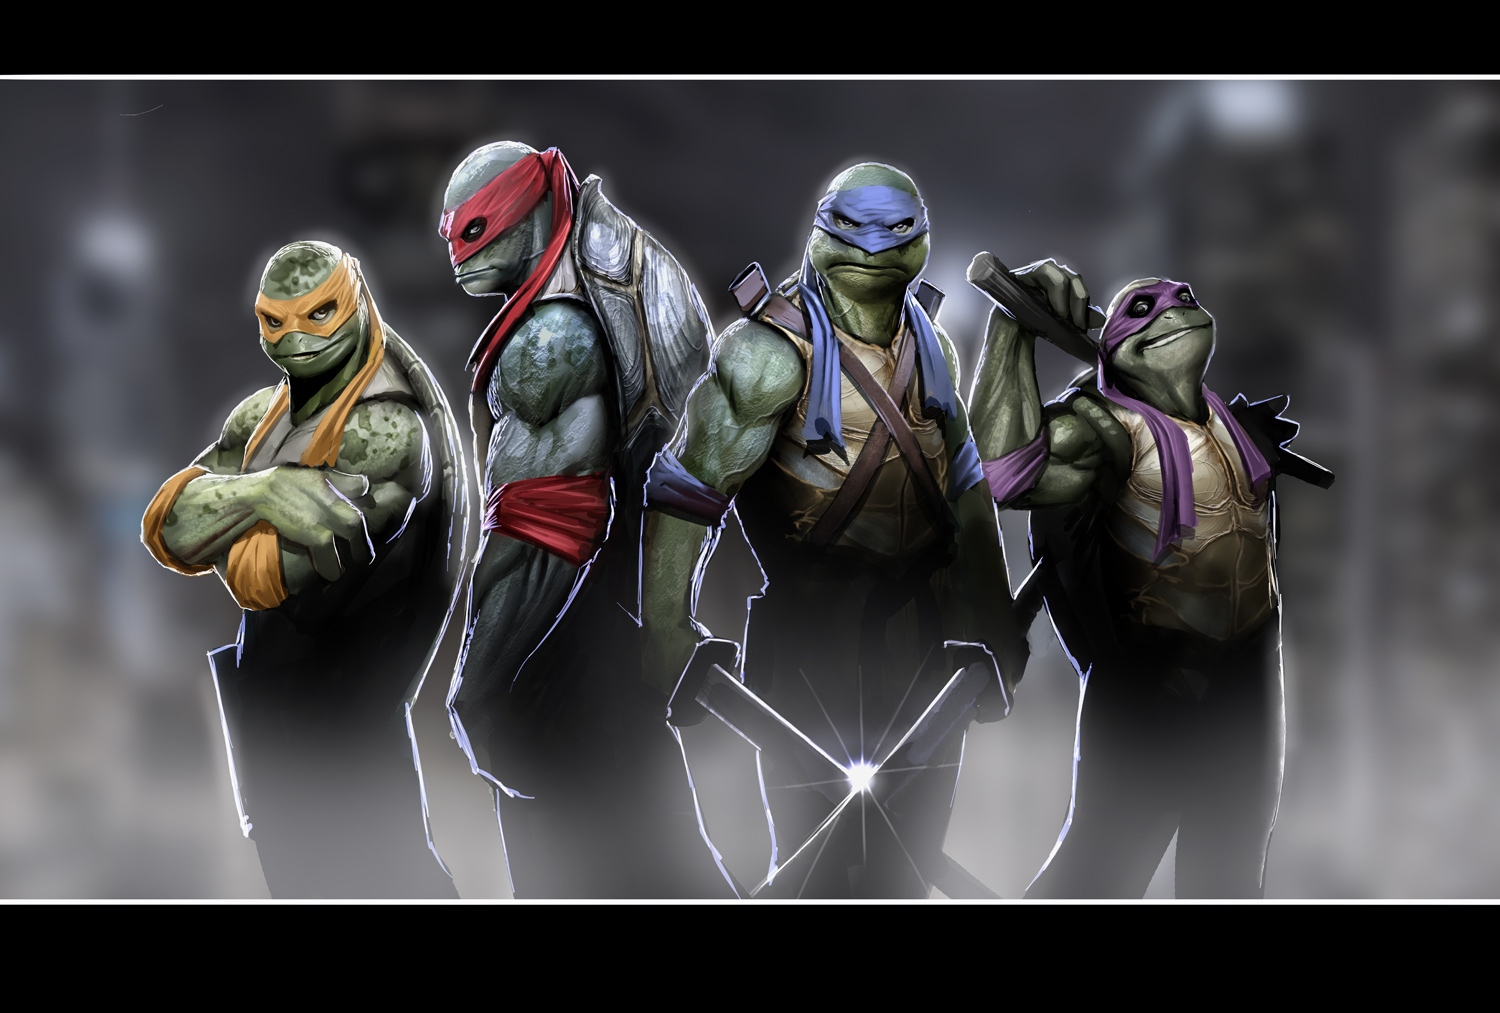 http://2.bp.blogspot.com/-IHBUQhZbtOE/Tqg8WaF3Y1I/AAAAAAAAAGs/WJBccb35X10/s1600/teenage_mutant_ninja_turtles_by_nebezial.jpg